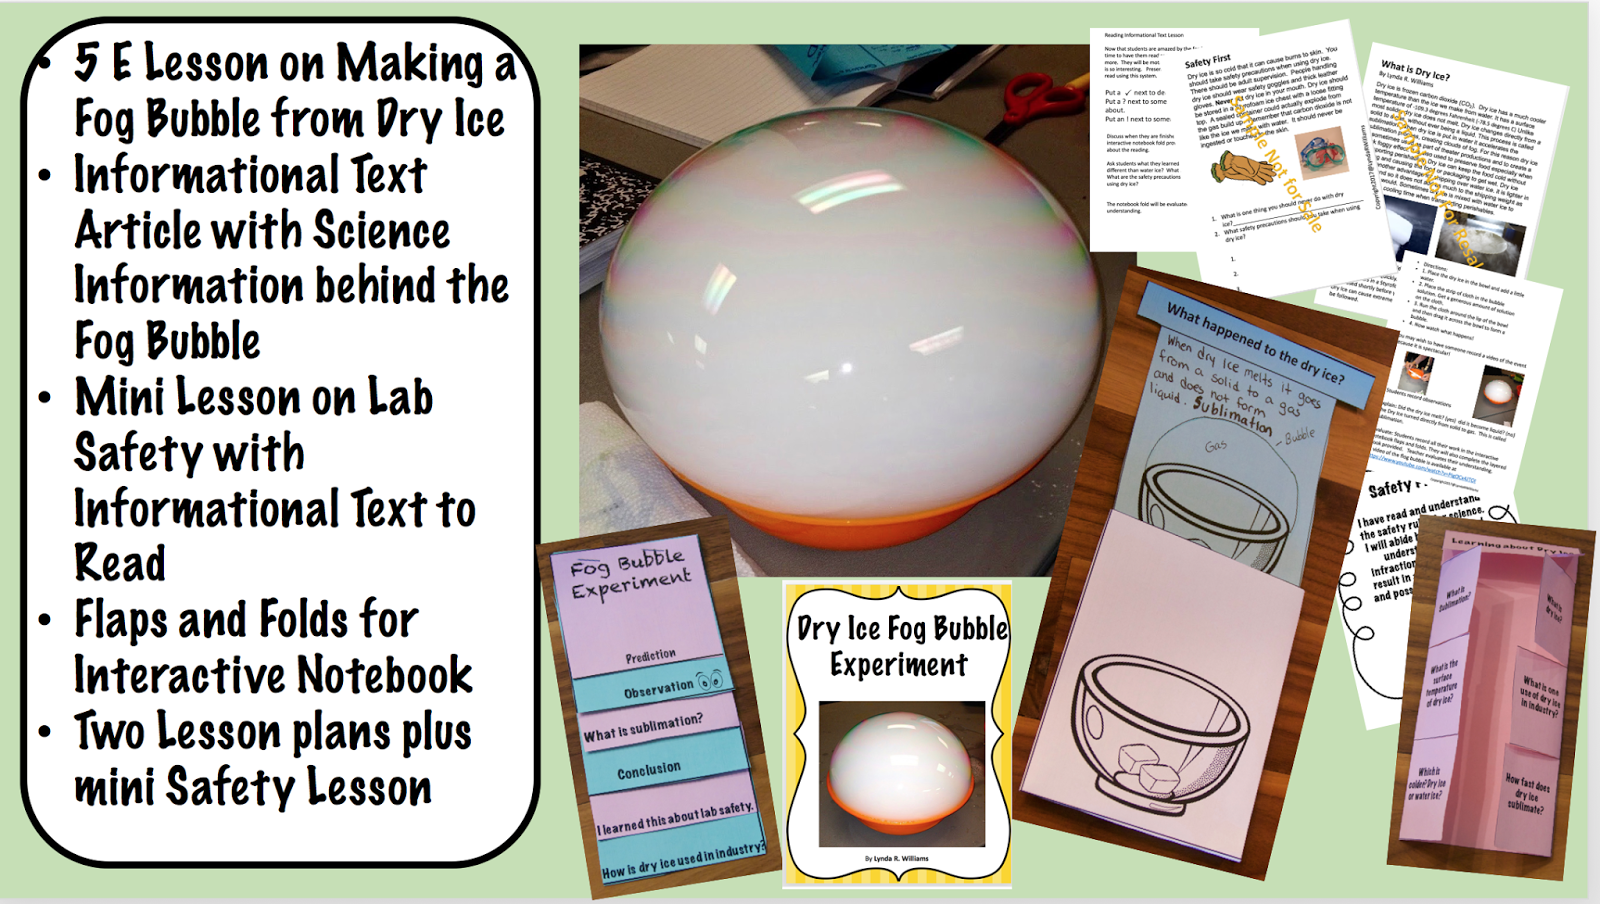 Teaching science with lynda making fog bubbles with dry ice lab safety around dry ice k fob bubble lessons with informational text article robcynllc Gallery